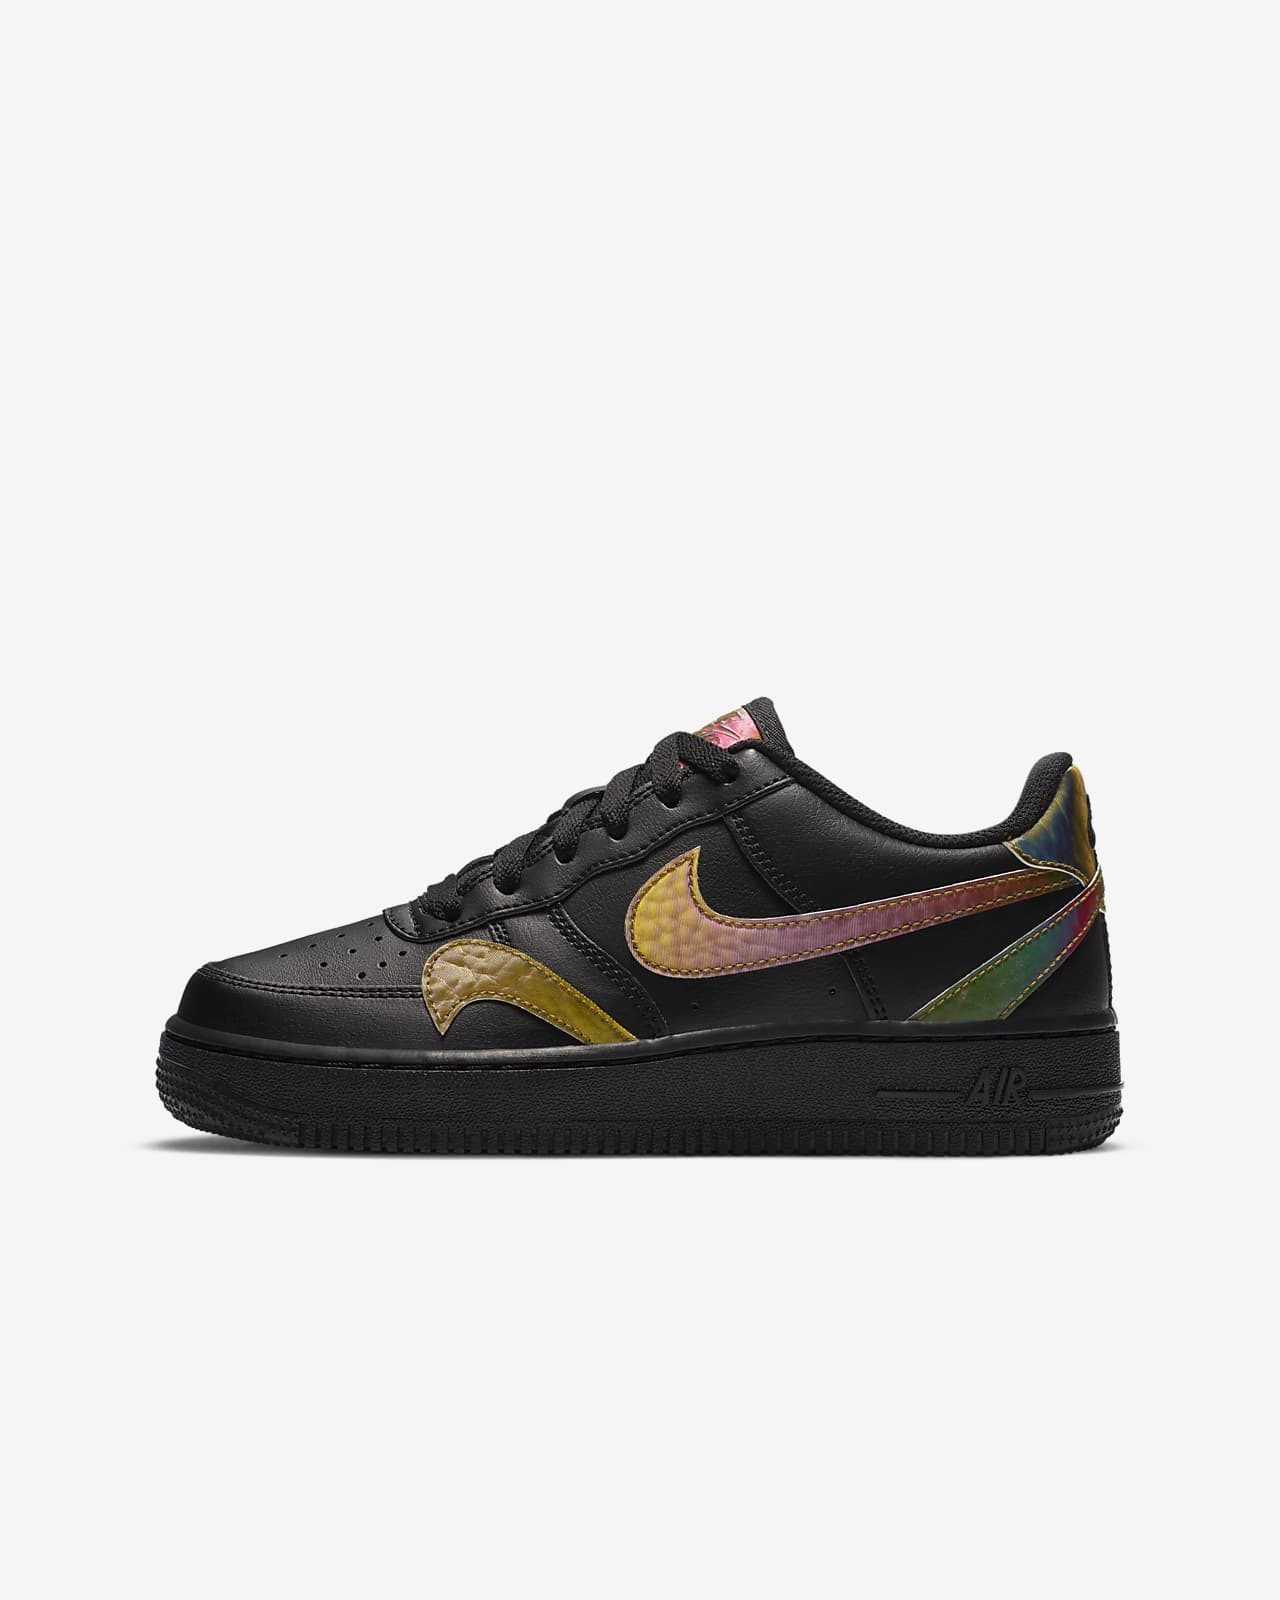 Nike Air Force 1 LV8 2 Big Kids' Shoe